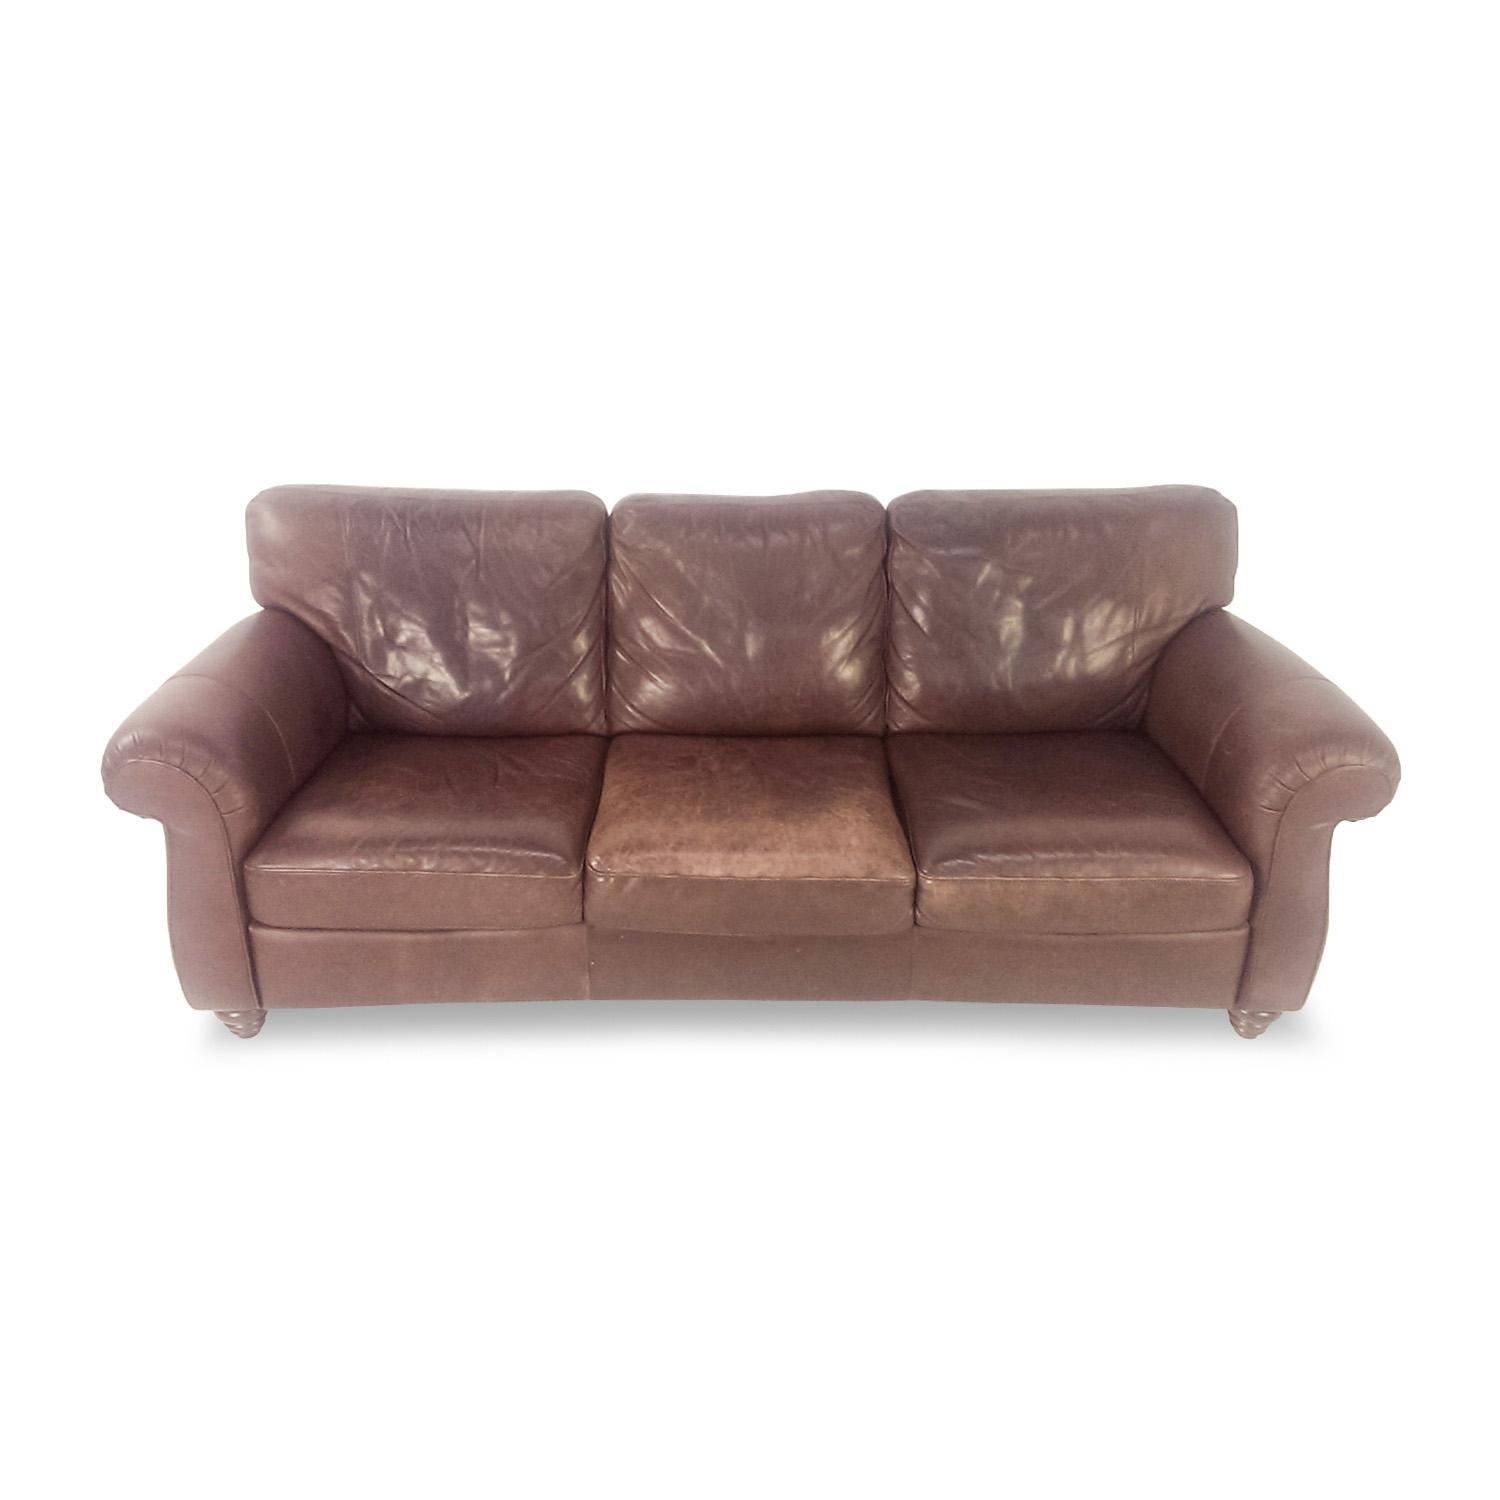 61% Off – Taupe Leather Couch / Sofas In Classic Sofas For Sale (Image 2 of 20)